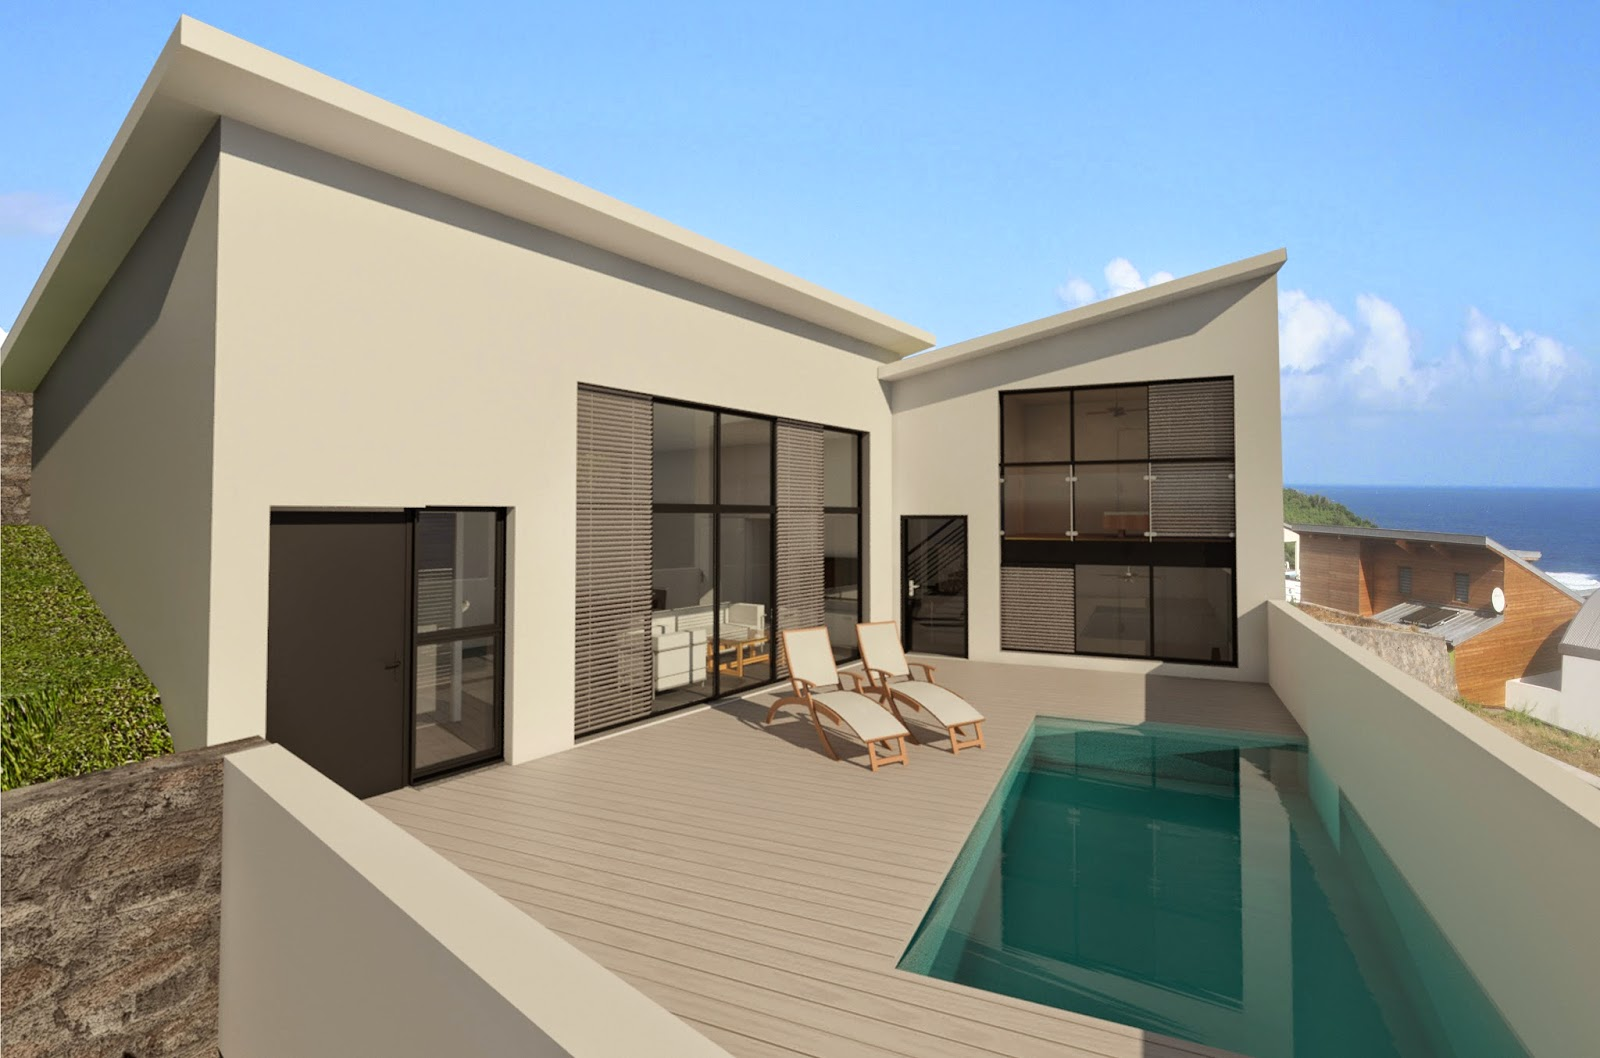 Construction maison ile de la reunion avie home for Construction maison 974